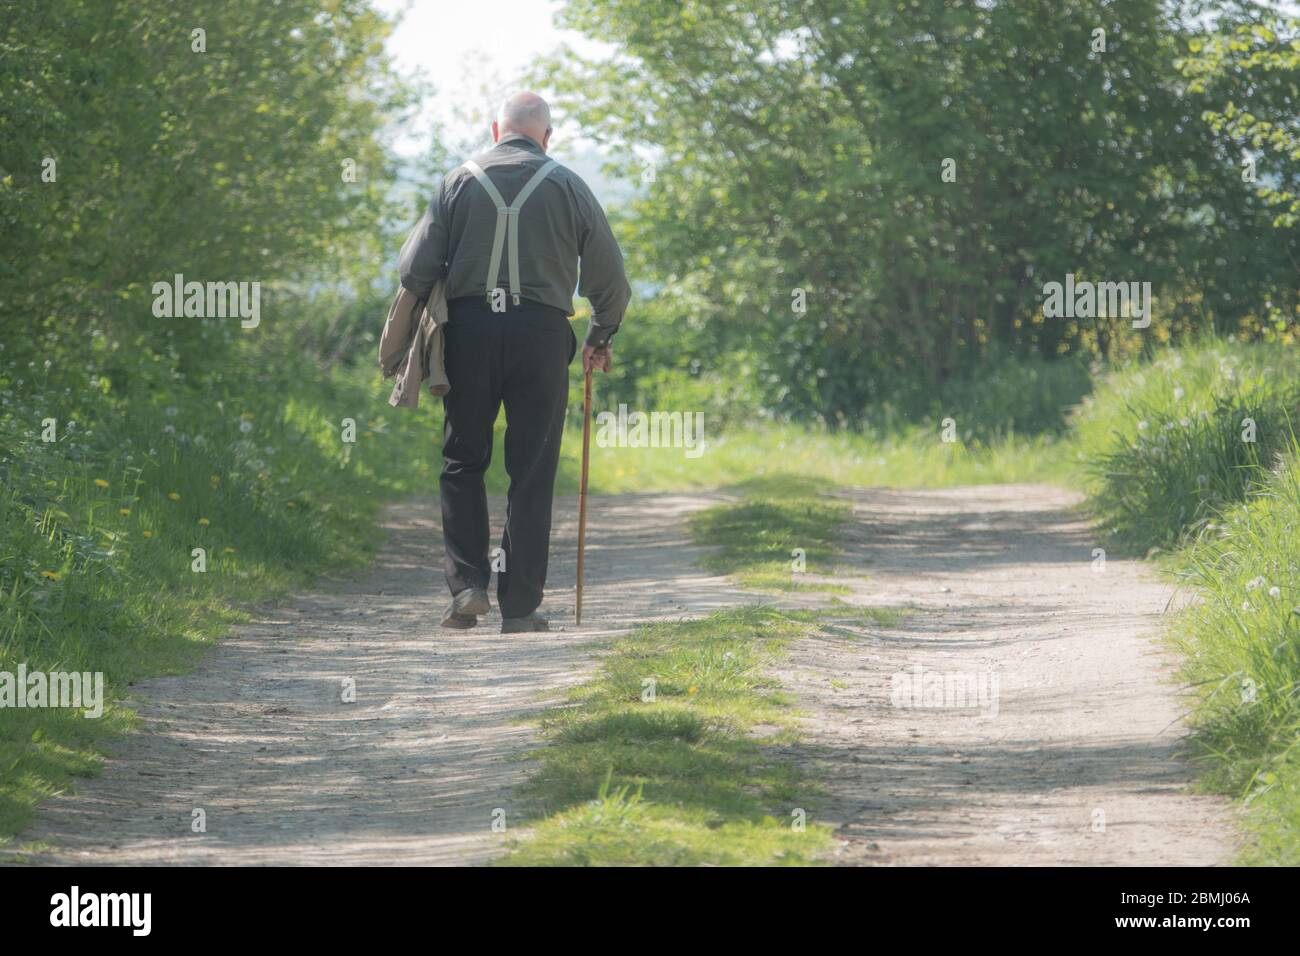 an old man walks along a country lane on a walking stick Stock Photo